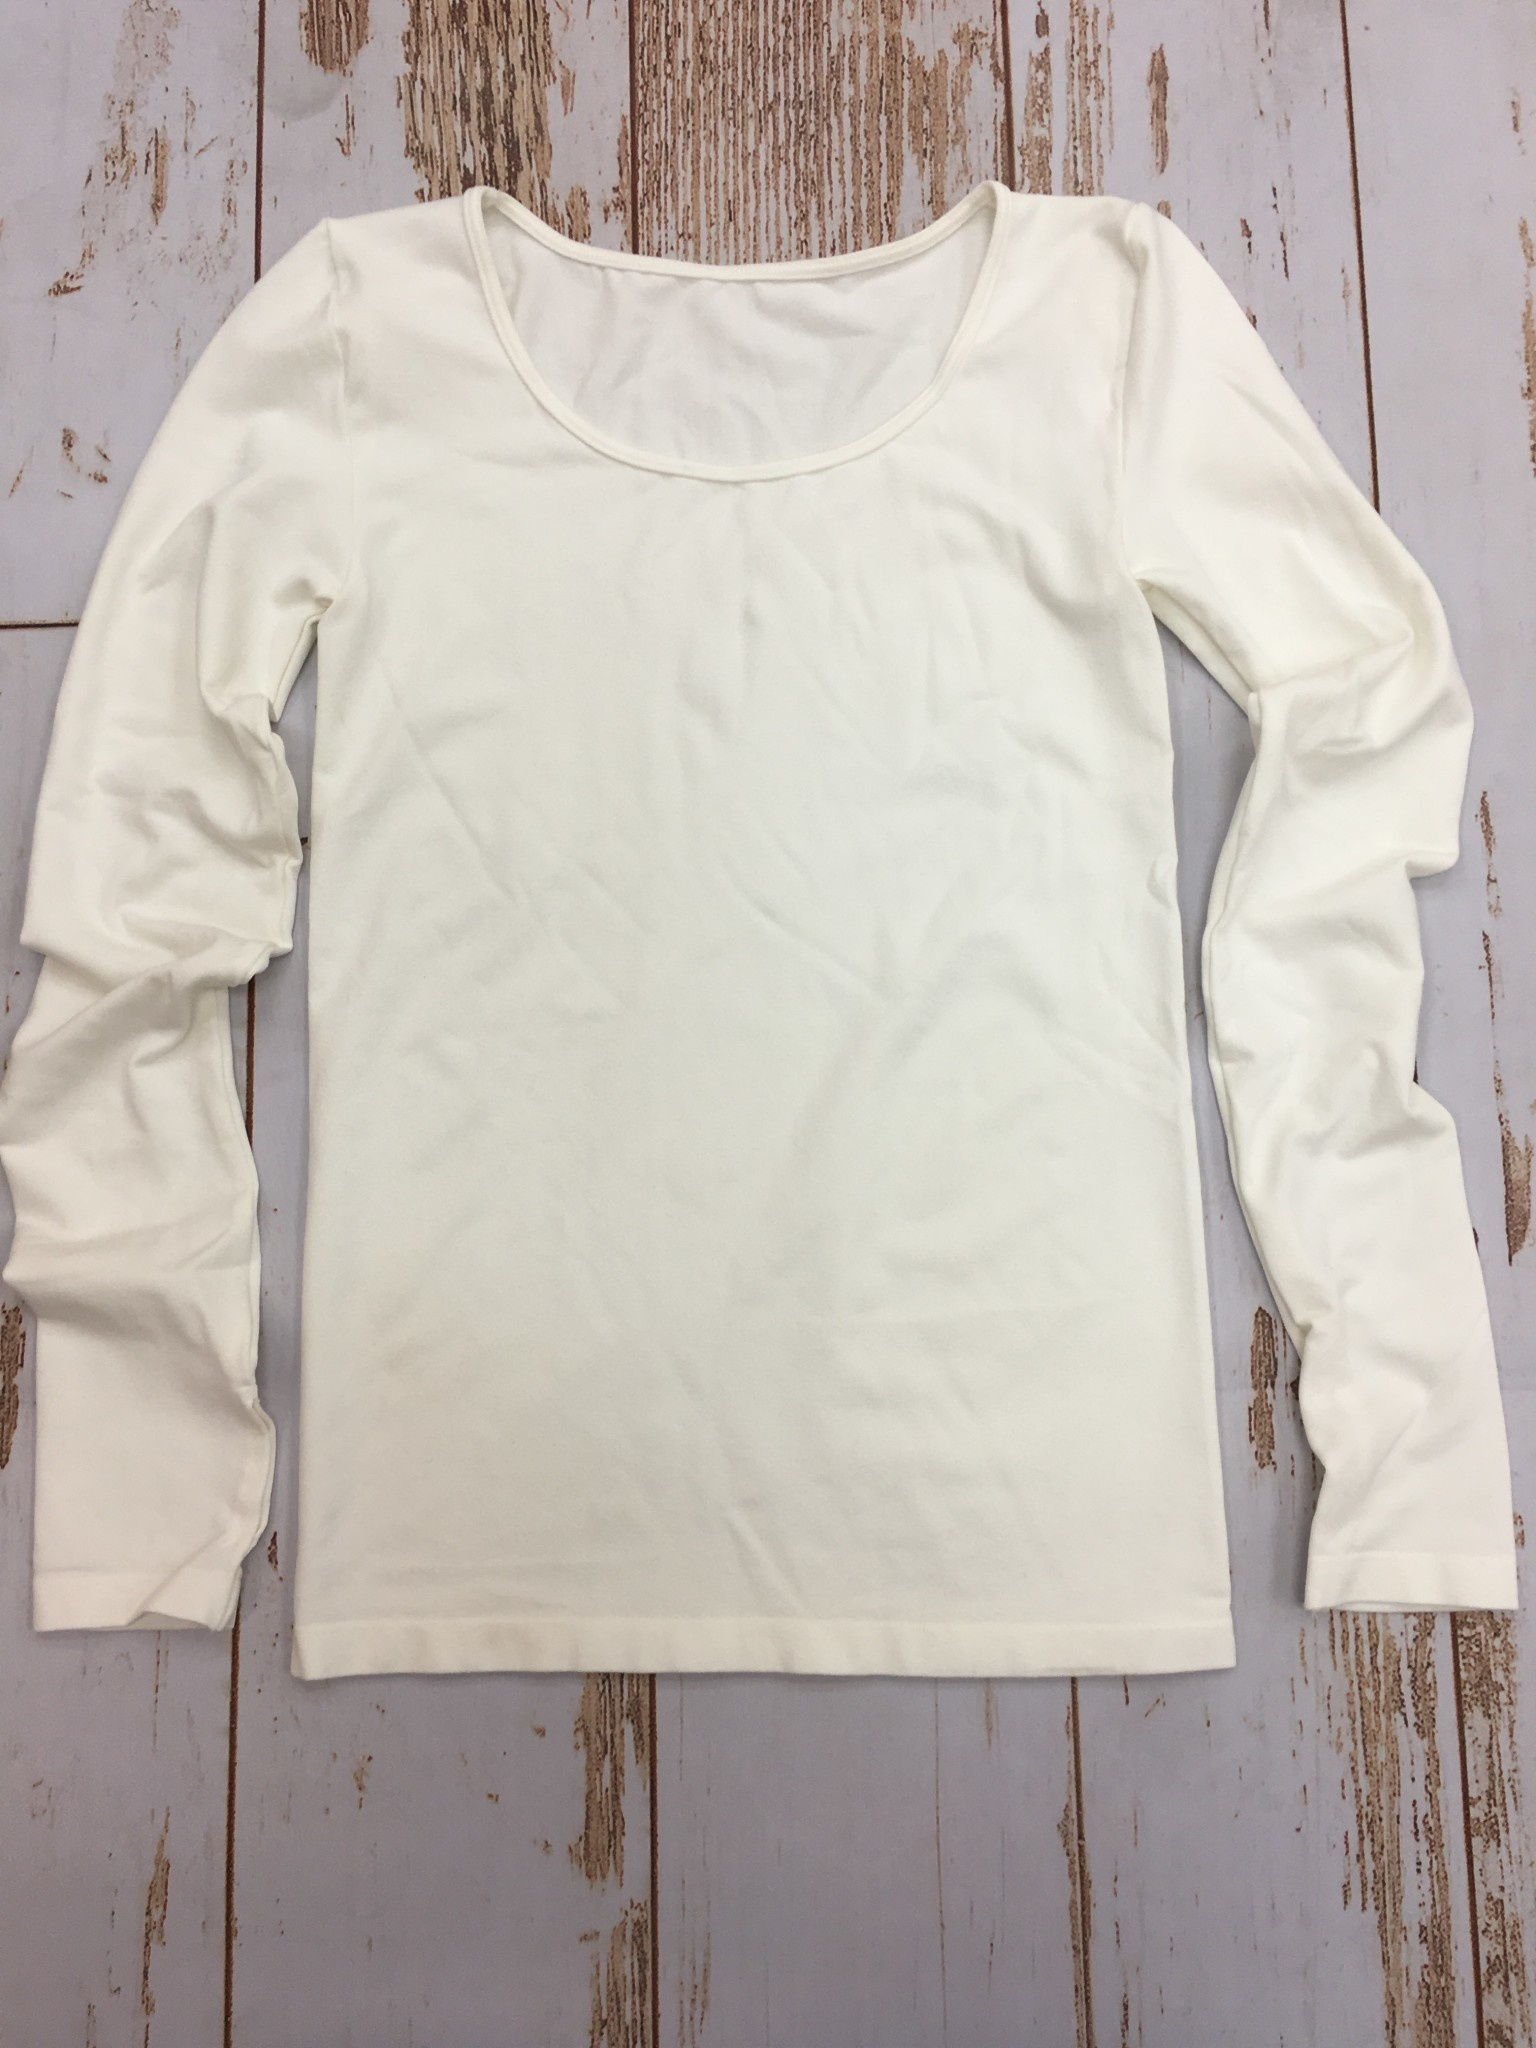 M Rena Long Sleeve Top w/Thumbhole in Off White